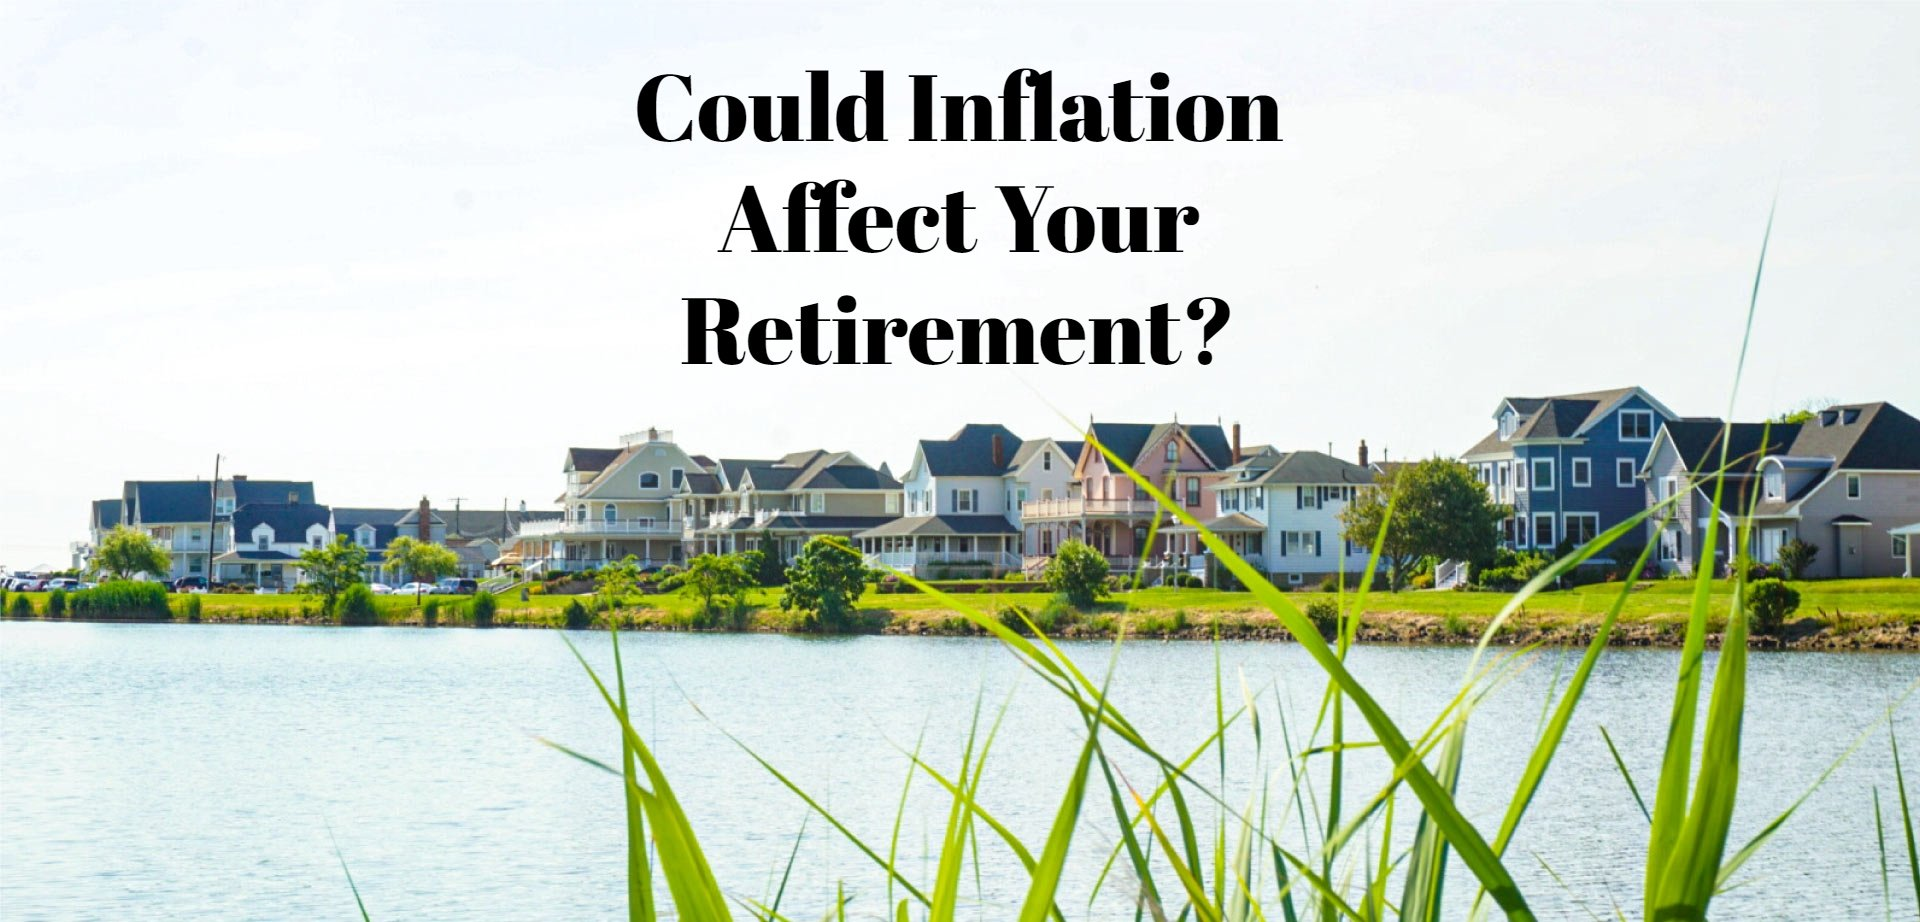 Could Inflation Affect Your Retirement